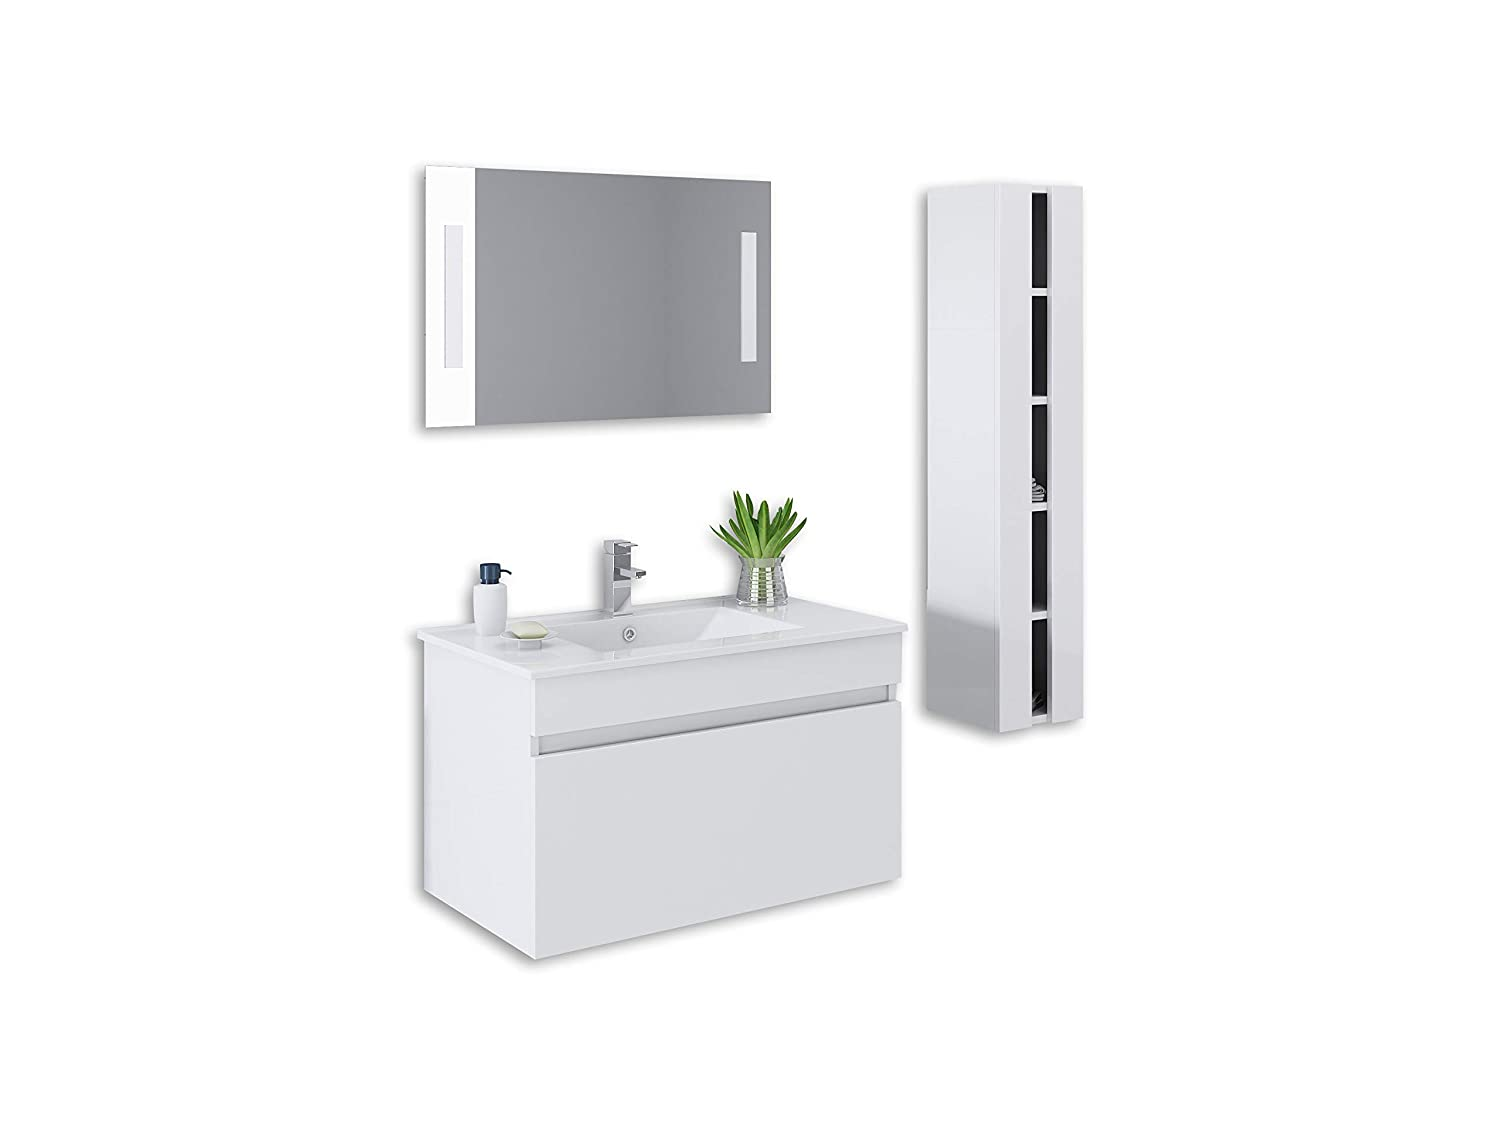 32 White High Gloss Wall Mount Vanity Set Mirror Sink Faucet And